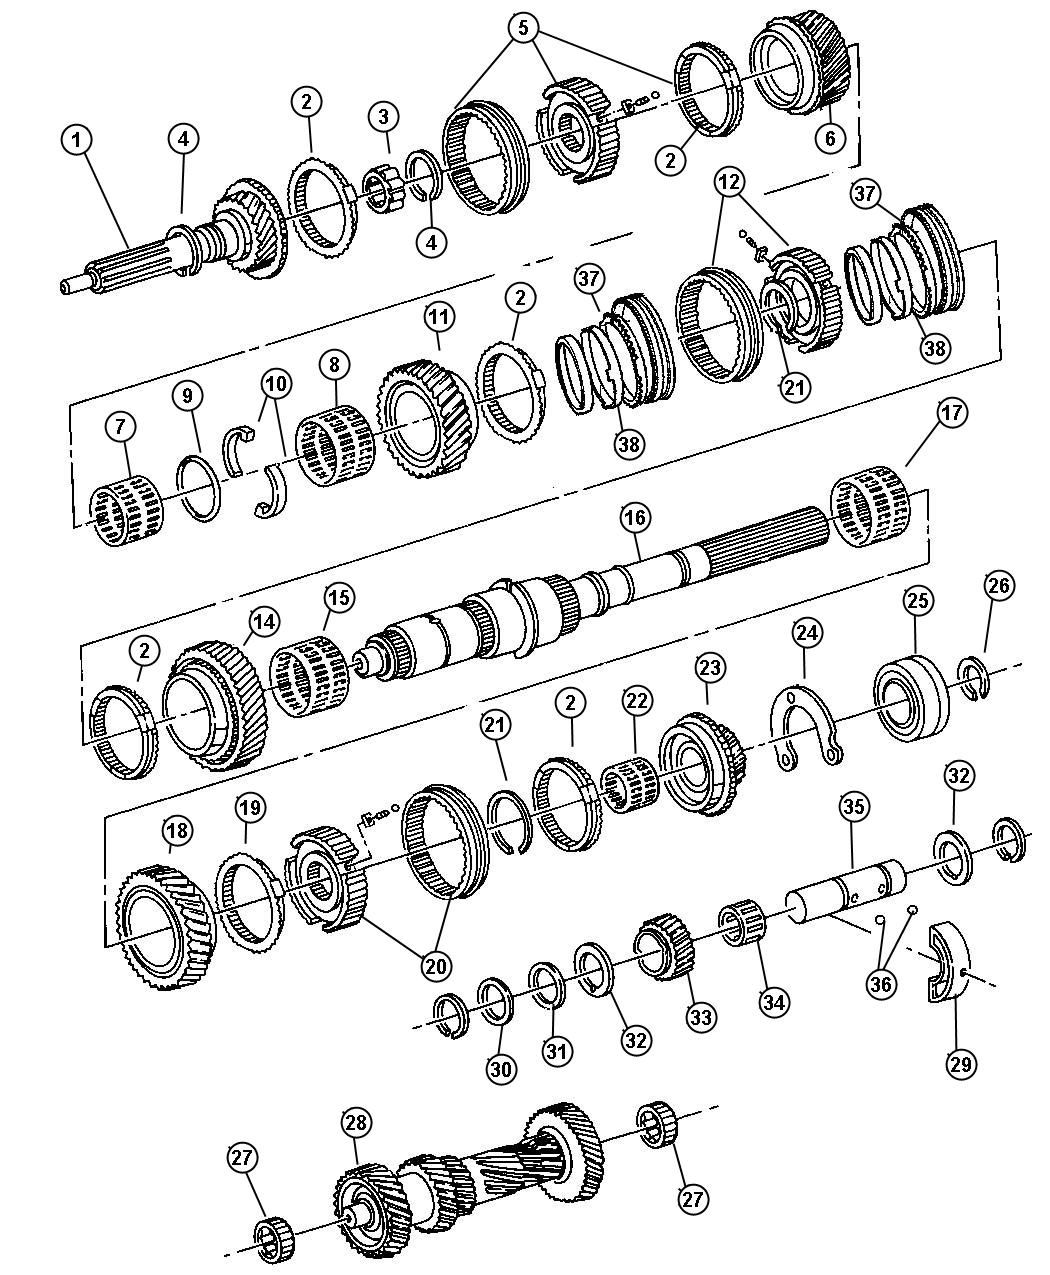 Chrysler Concorde Synchronizer. Used for: third and fourth